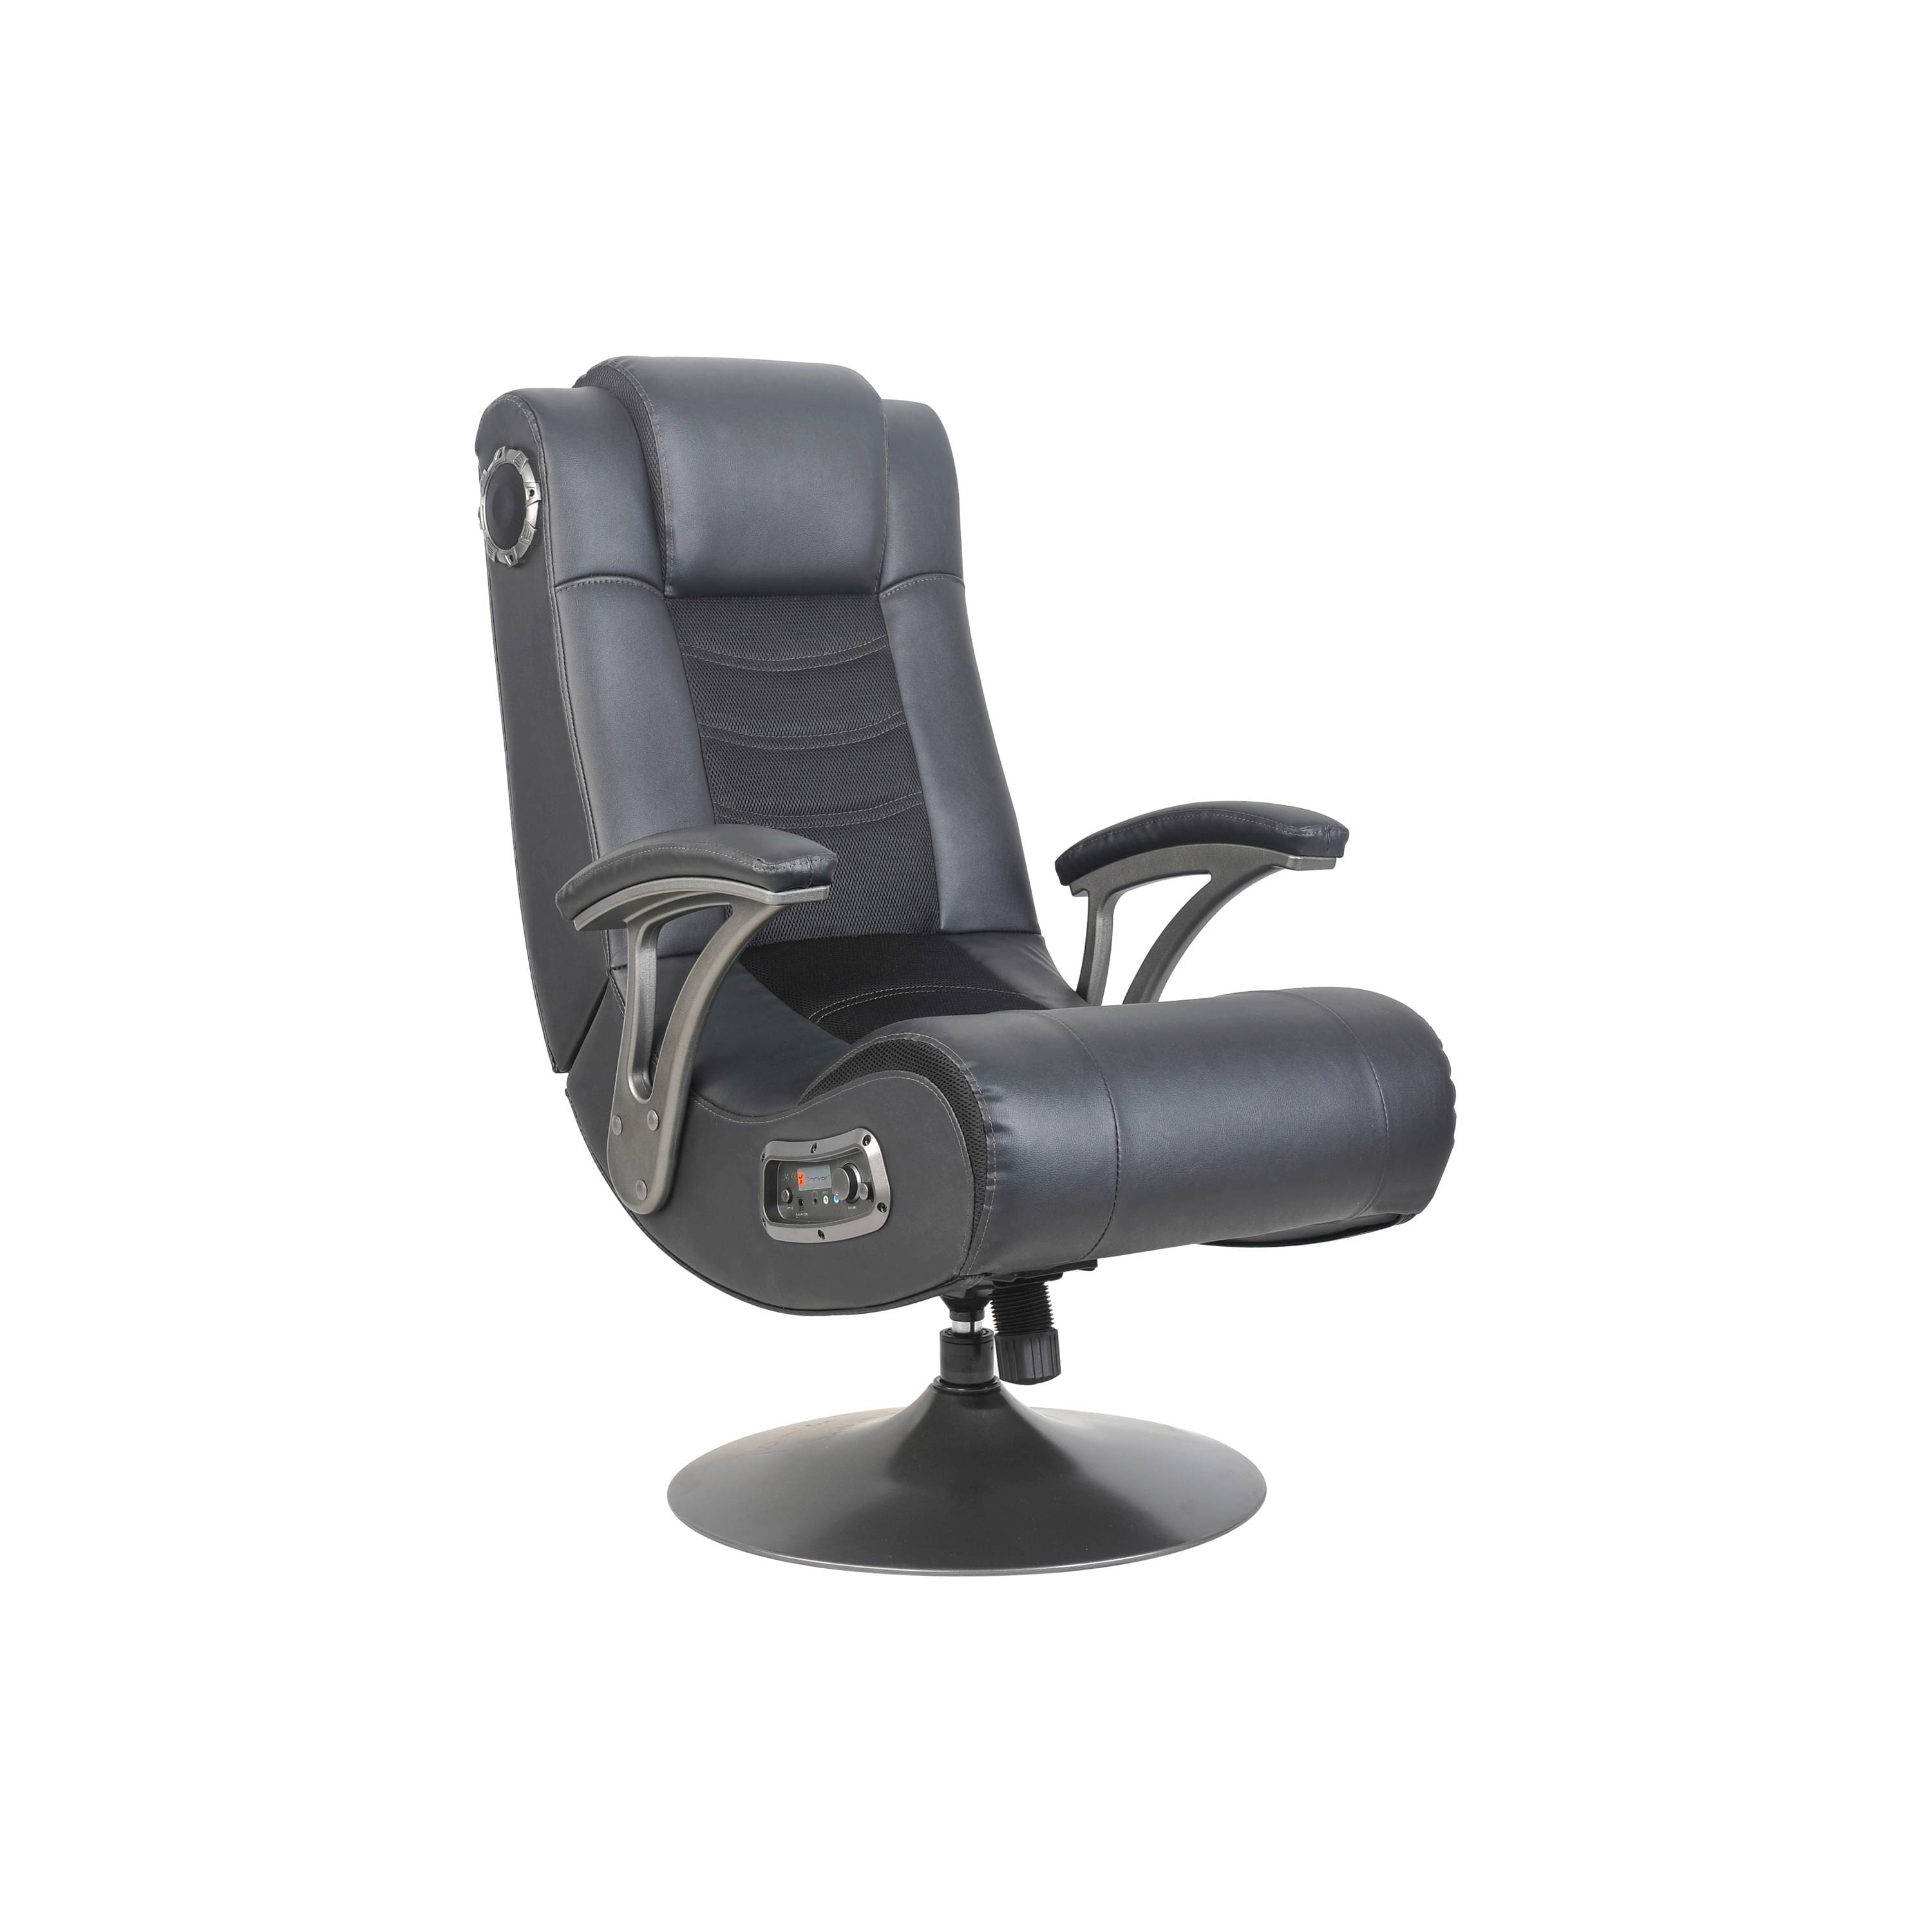 x pro 2 pedestal gaming chair in store only ymmv or less with target card. Black Bedroom Furniture Sets. Home Design Ideas